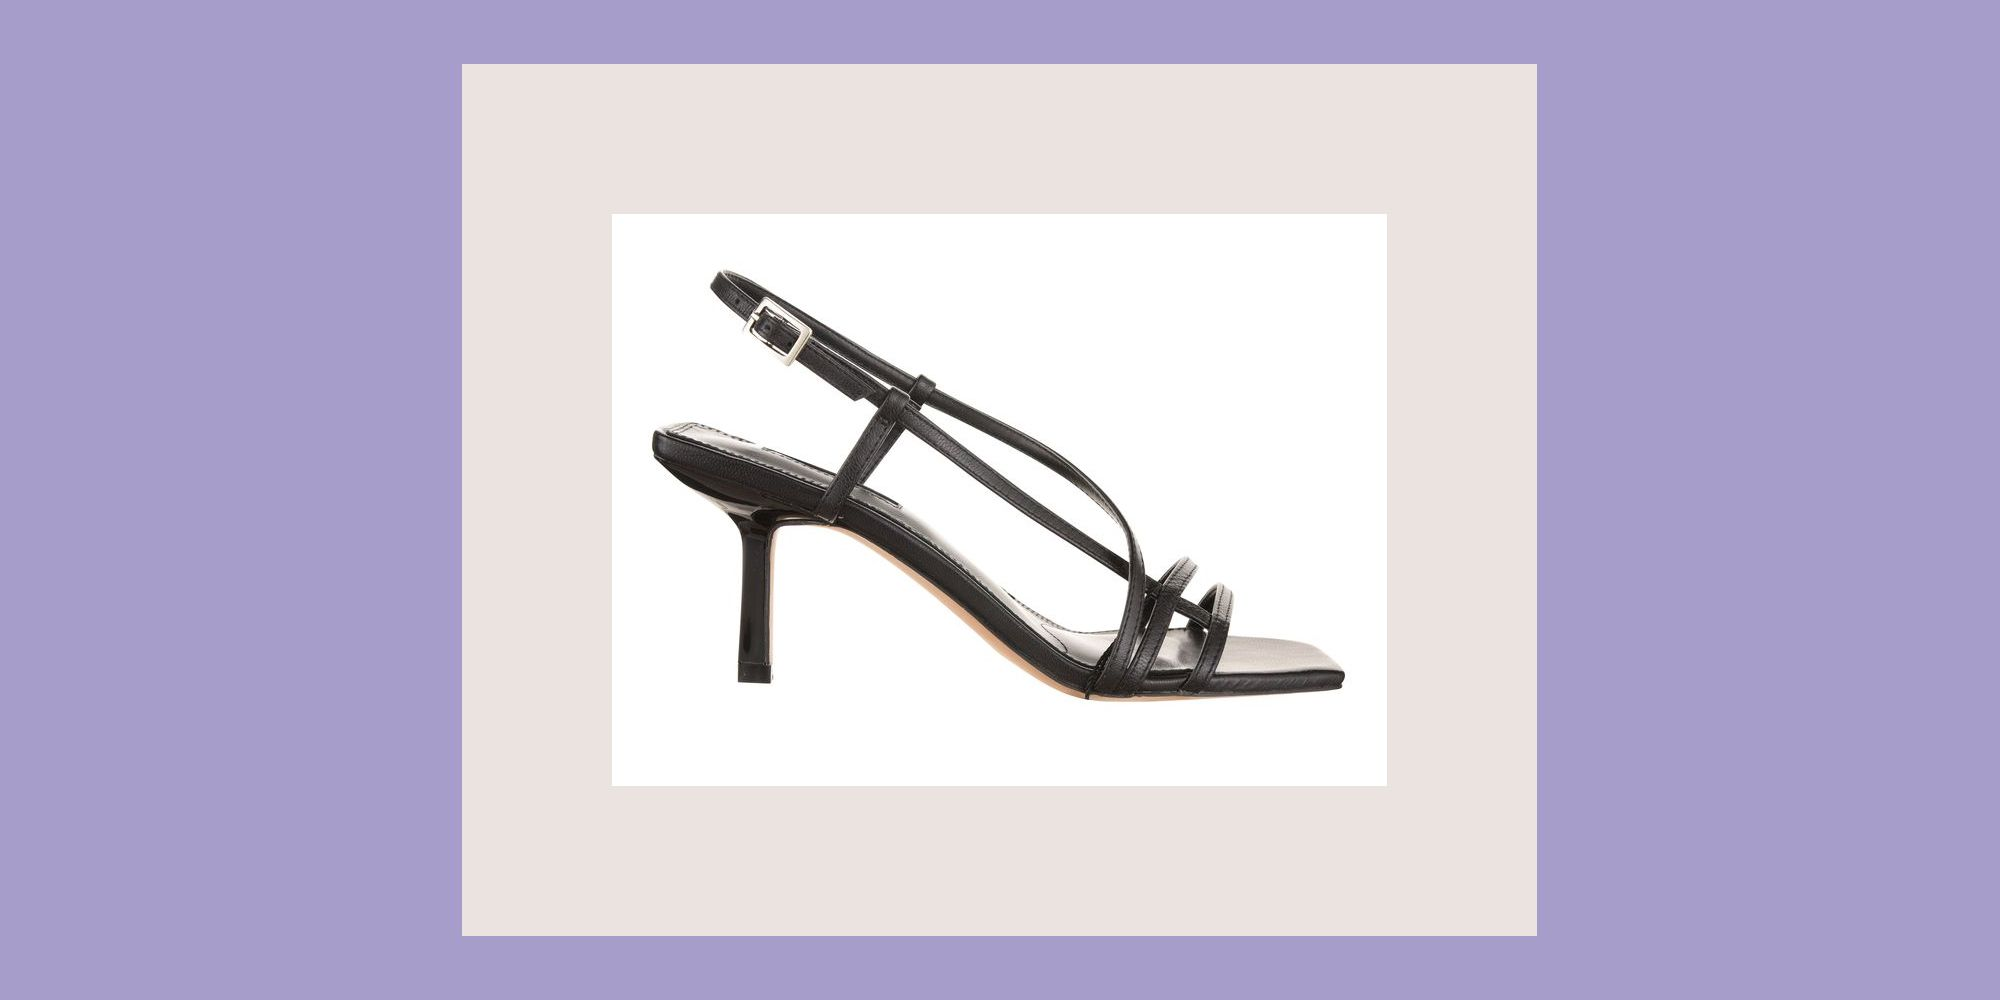 Topshop's sell-out strappy sandals are back in stock